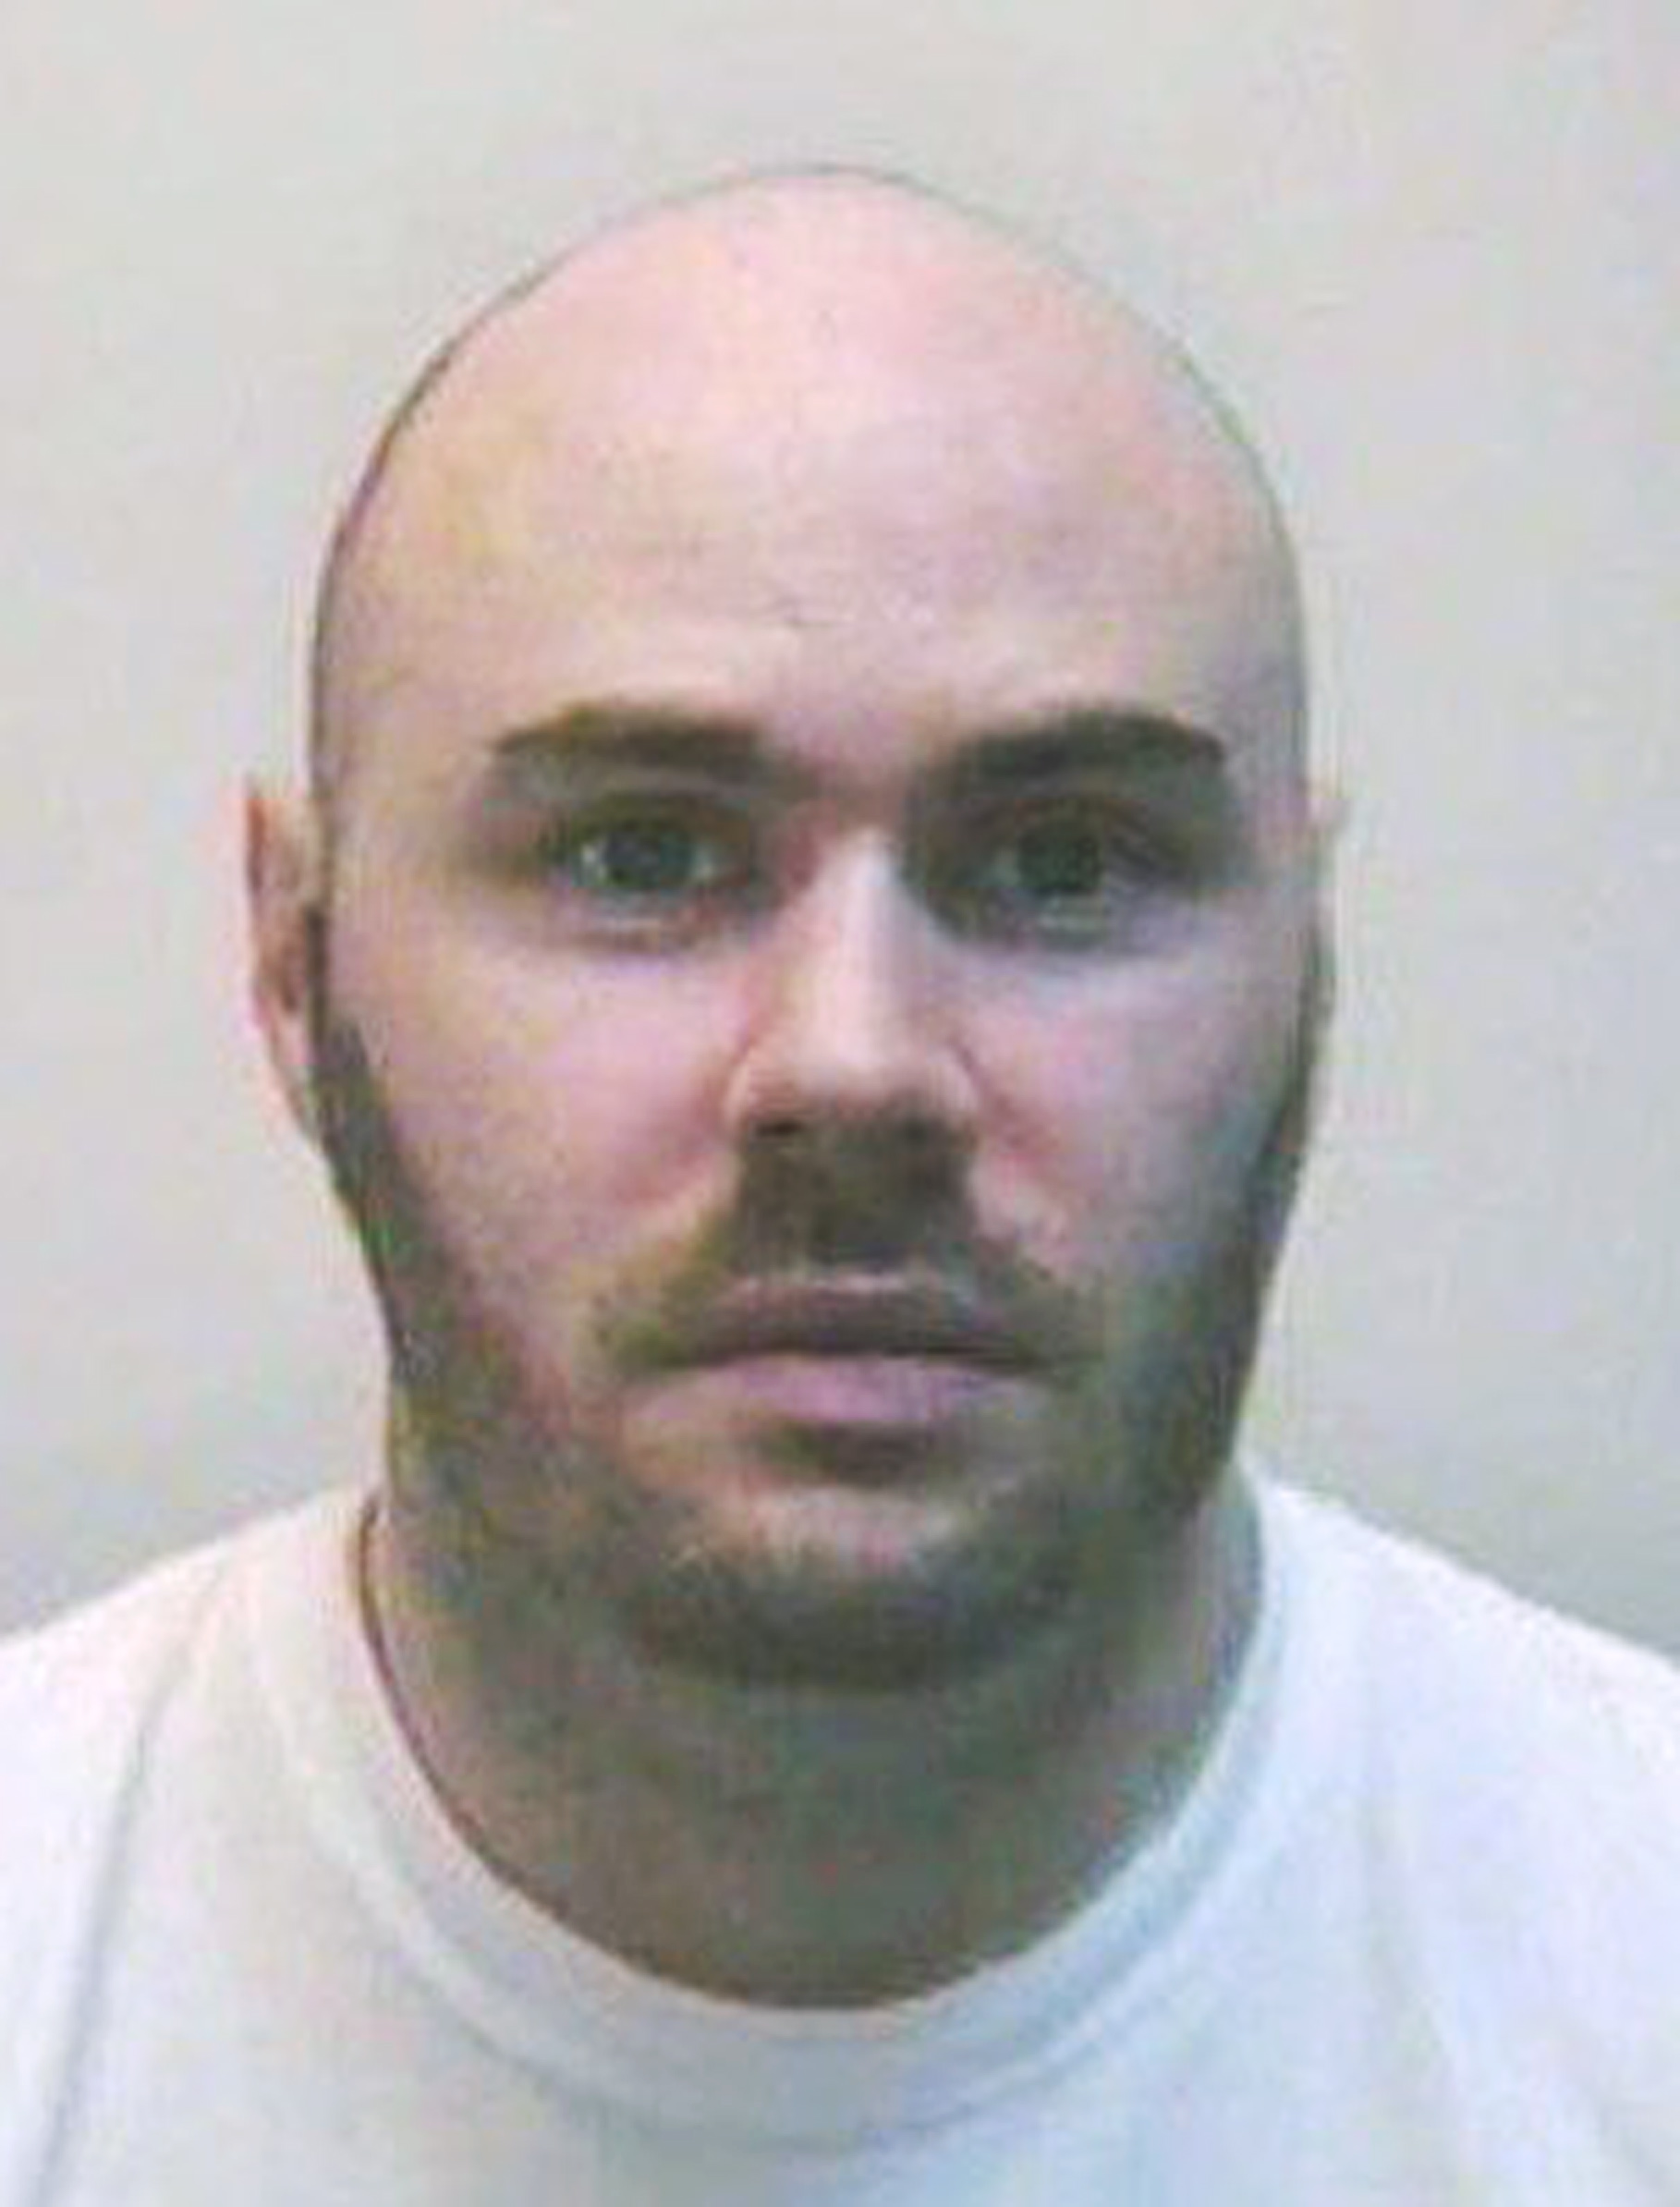 Ex cop Simon Jones who had sex with women while he was on duty